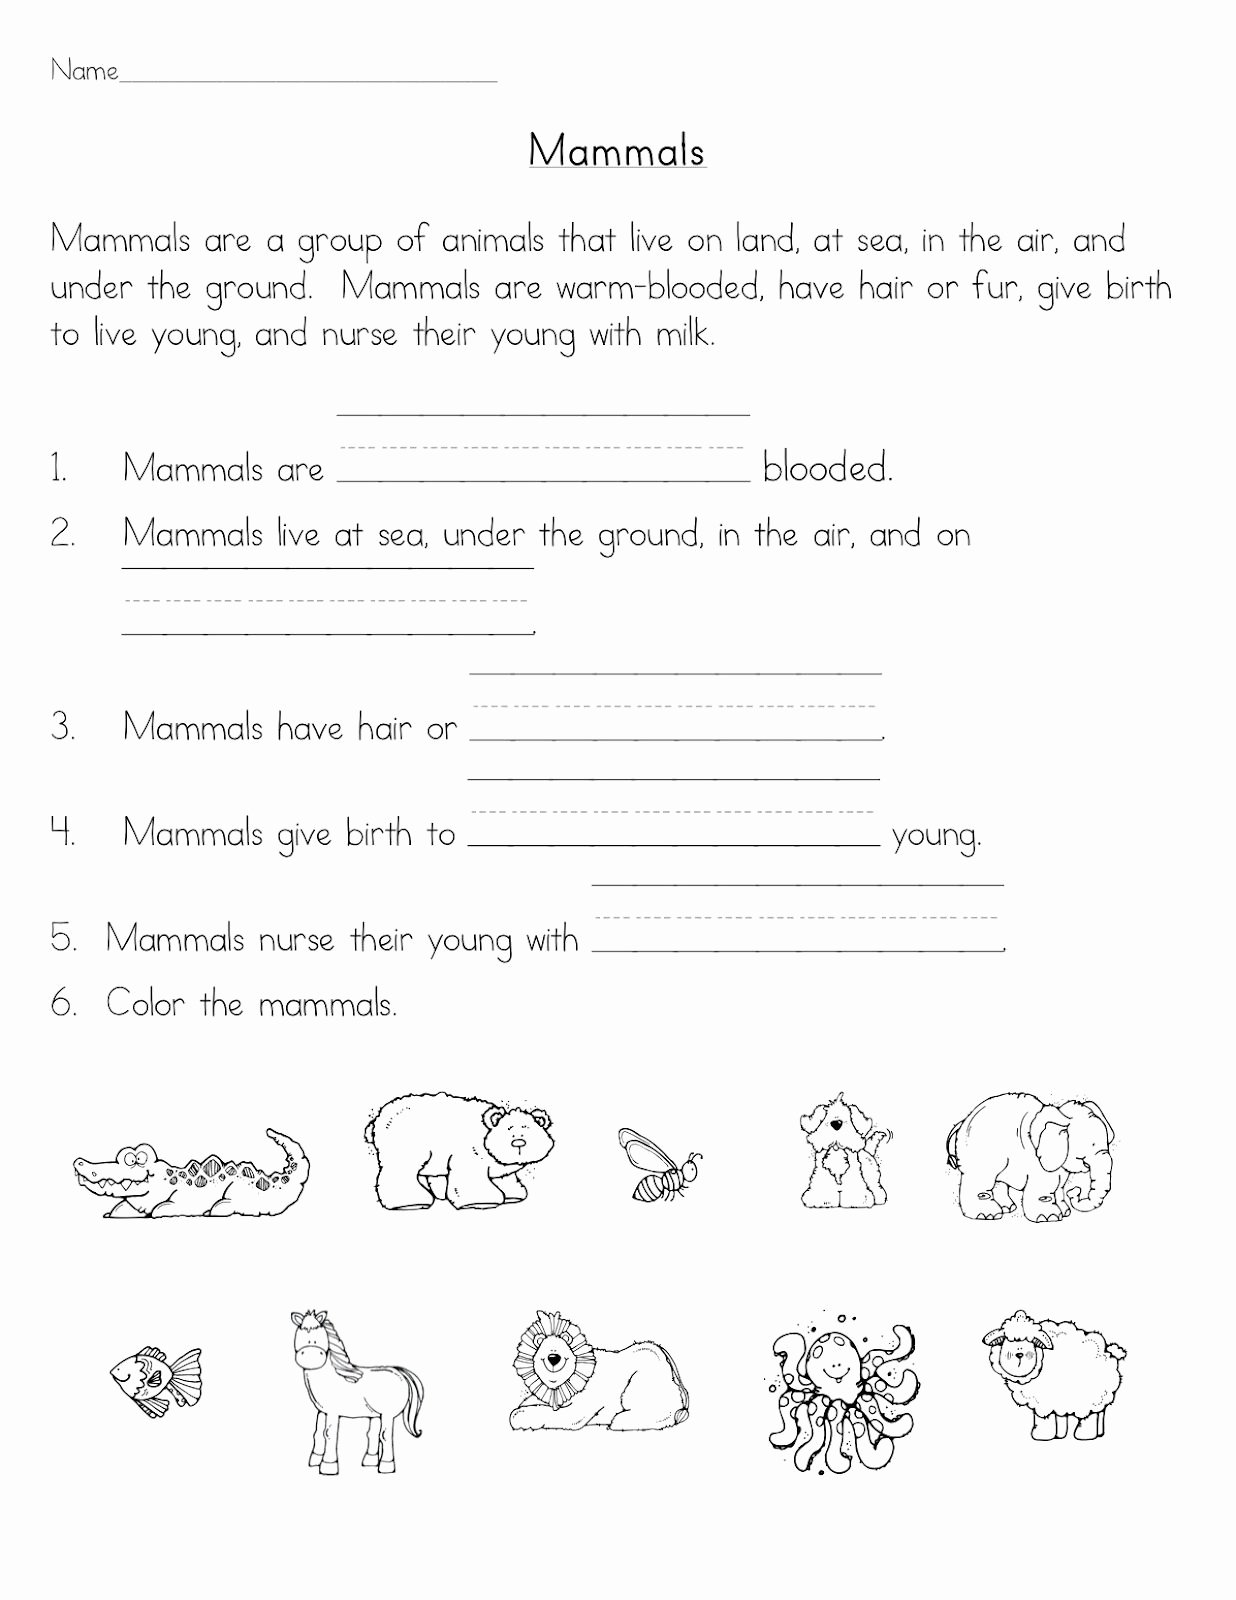 Mammals Worksheets for 2nd Grade Best Of Mammals Classroom Freebies